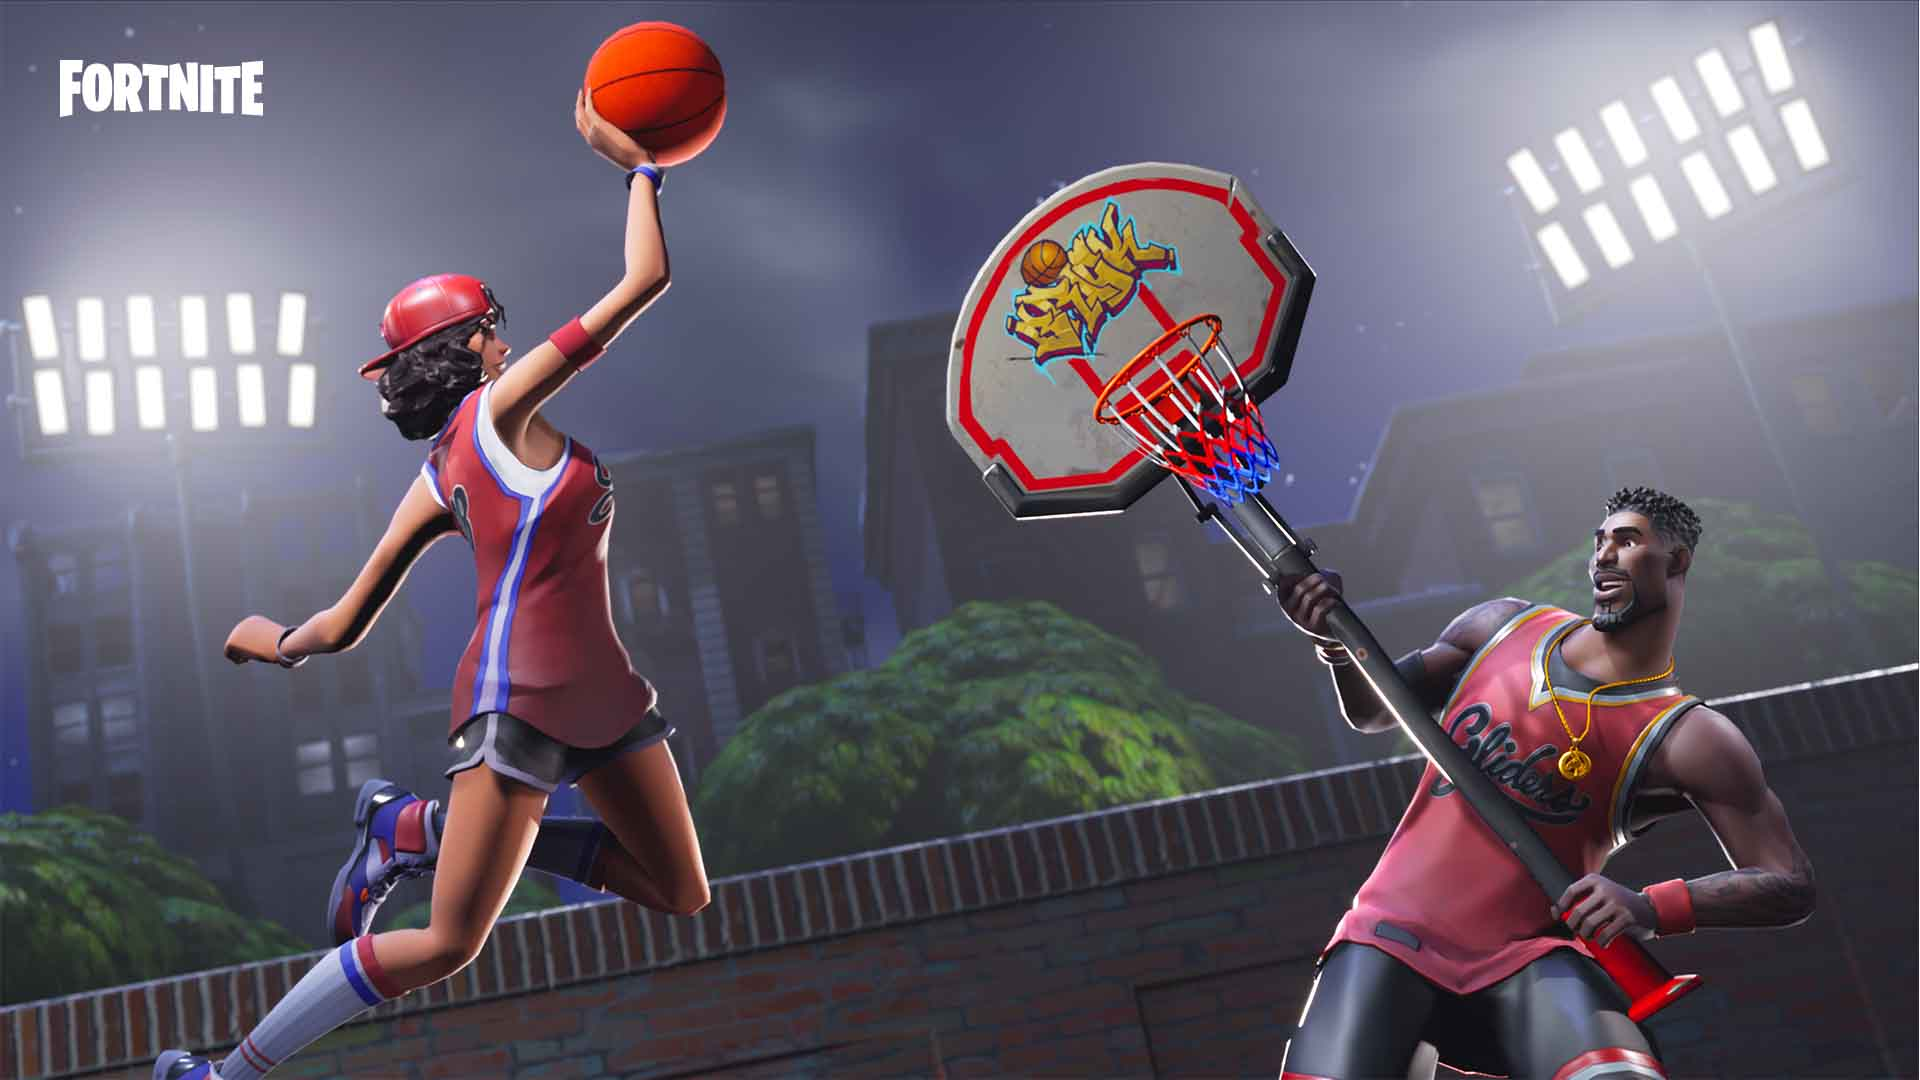 What did E3 tell us about the future of Fortnite?